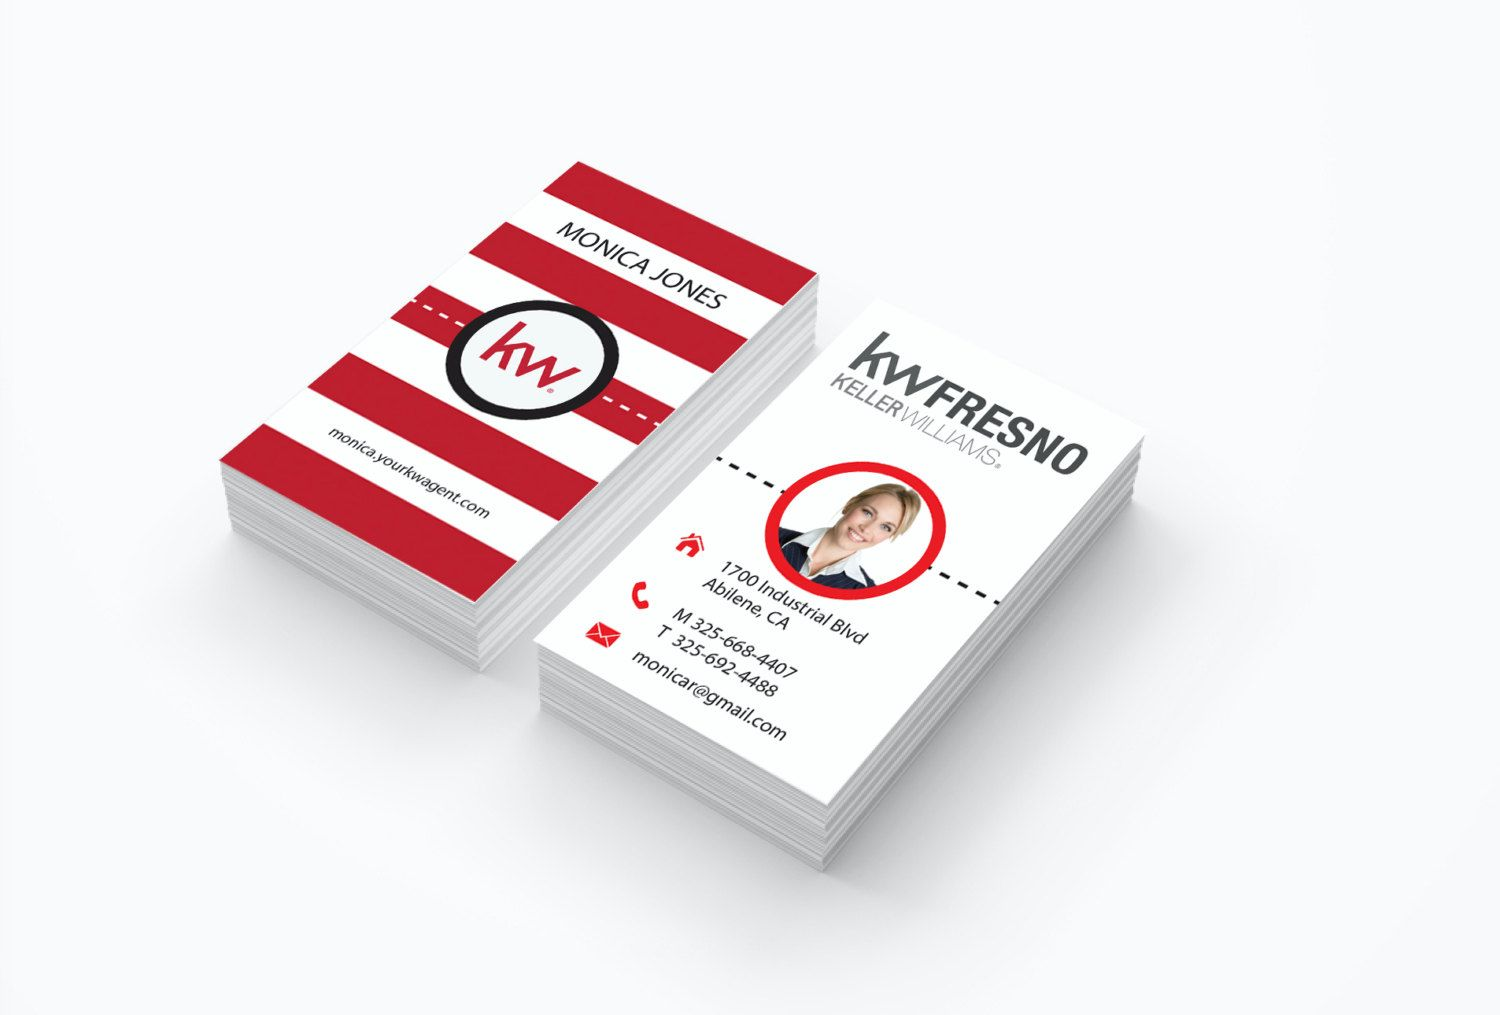 Cheap custom real estate business cards red stripes modern realtor cheap custom real estate business cards red stripes modern realtor gloss or matte color reheart